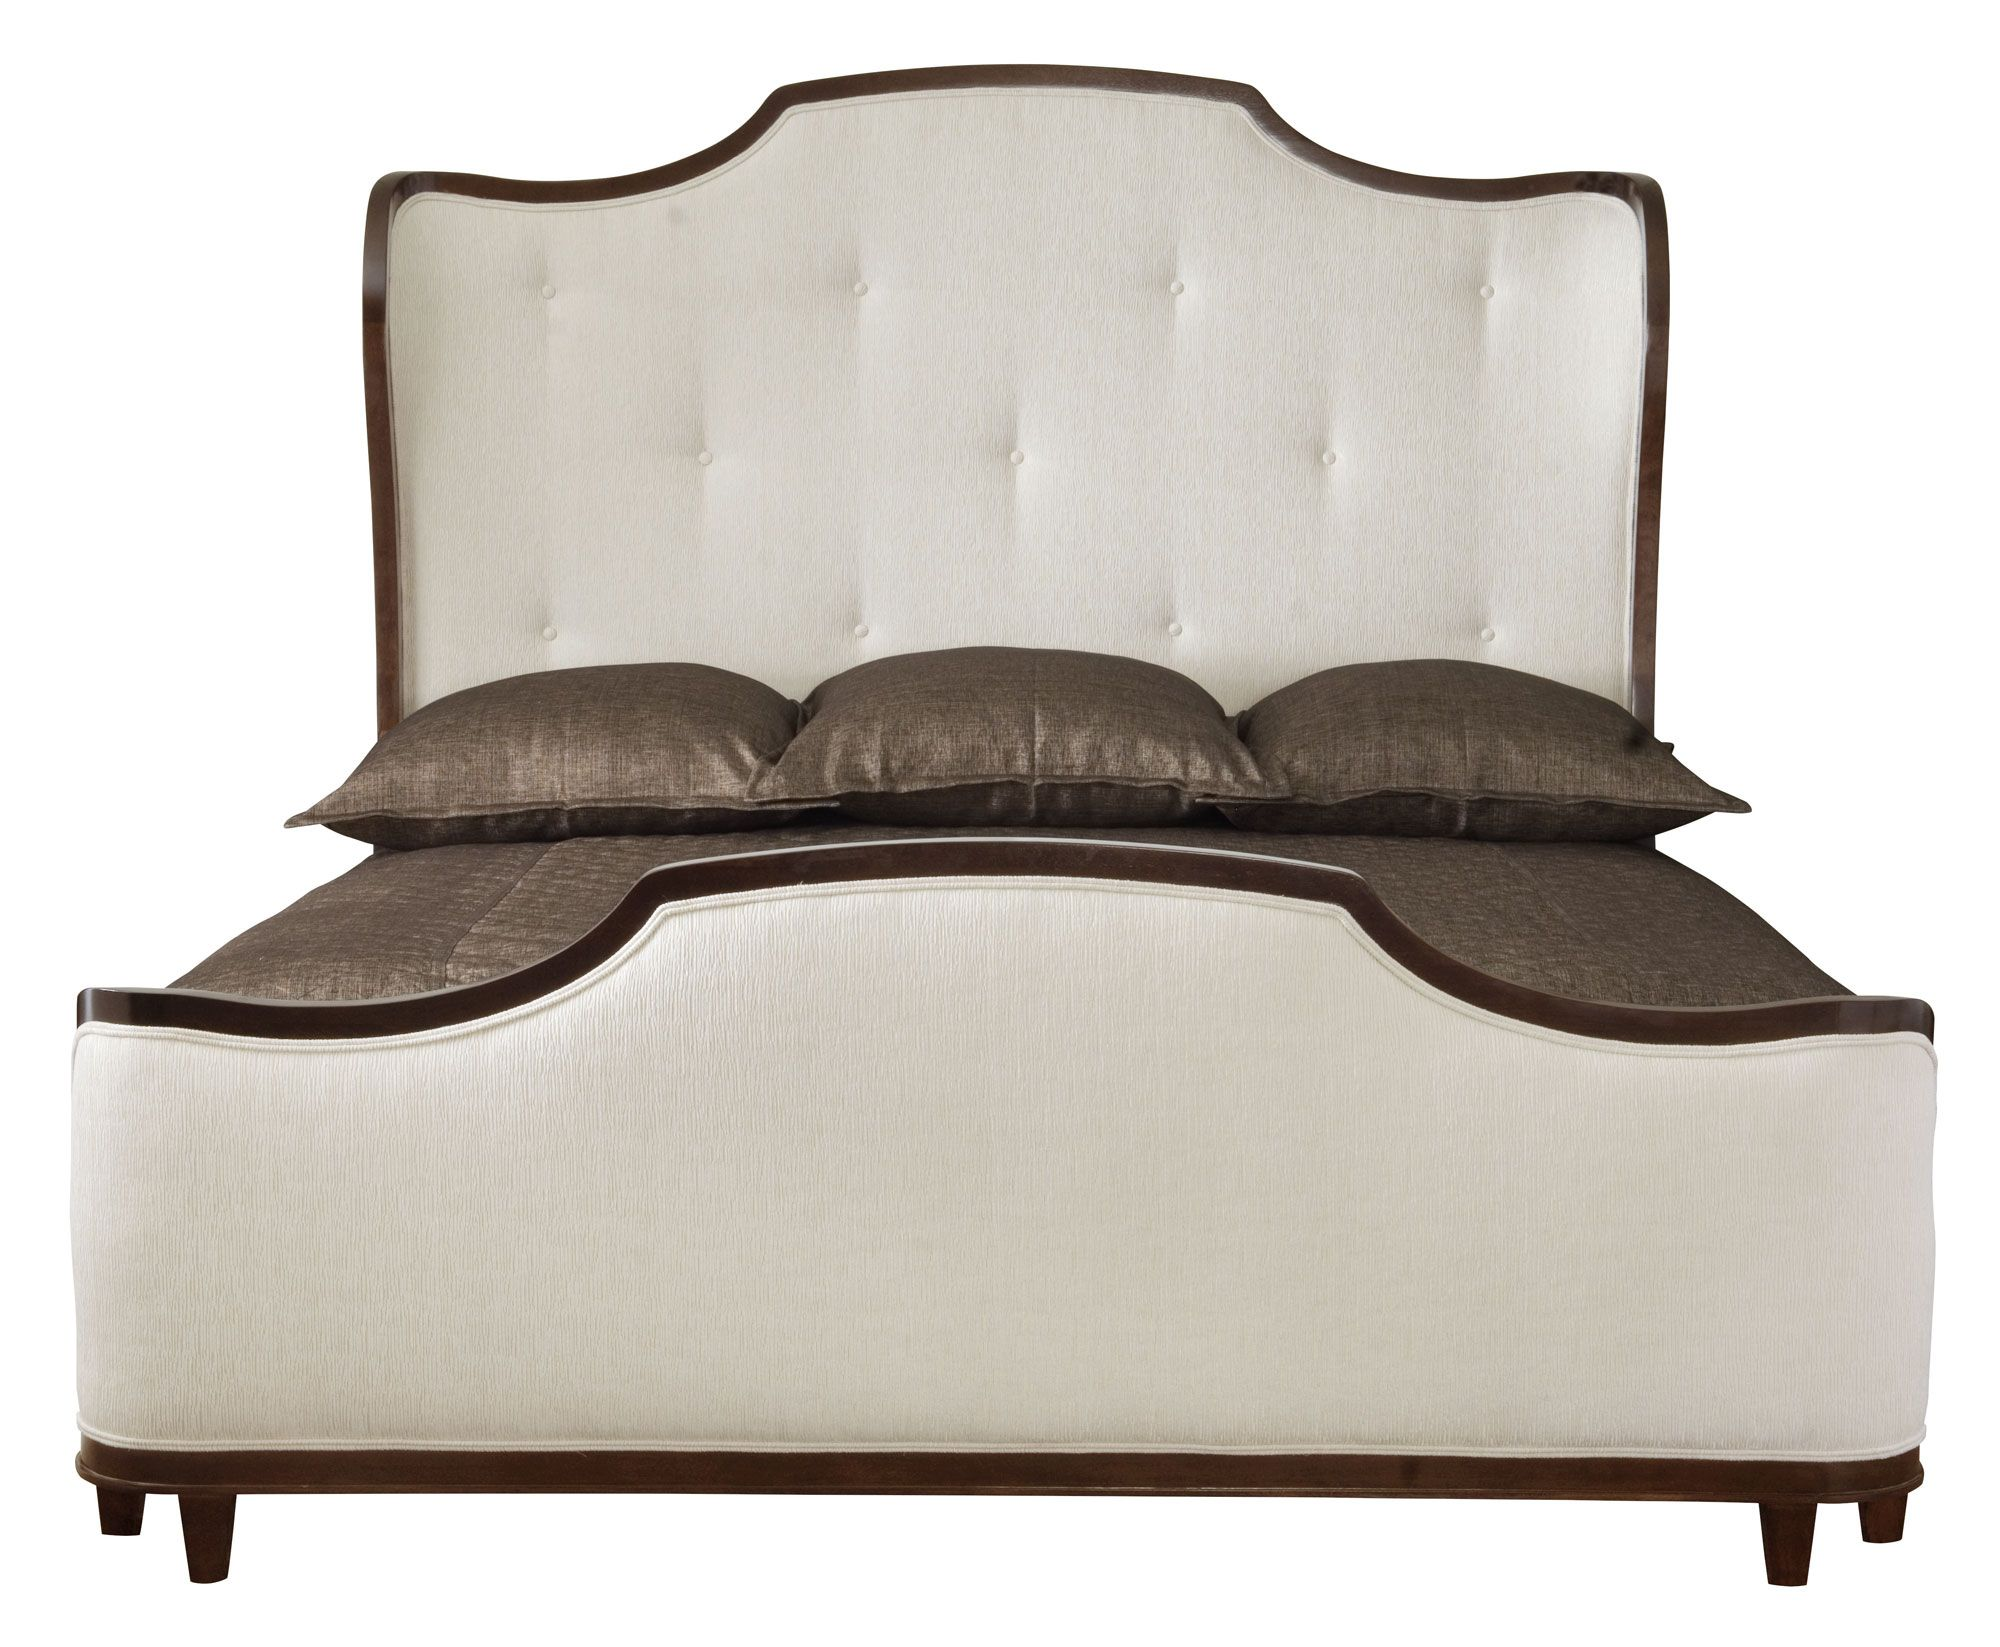 Best 360 H63 F63 R63 Miramont Upholstered Sleigh Bed Bernhardt King W 83 D 89 H 70 2767 50 Queen 640 x 480